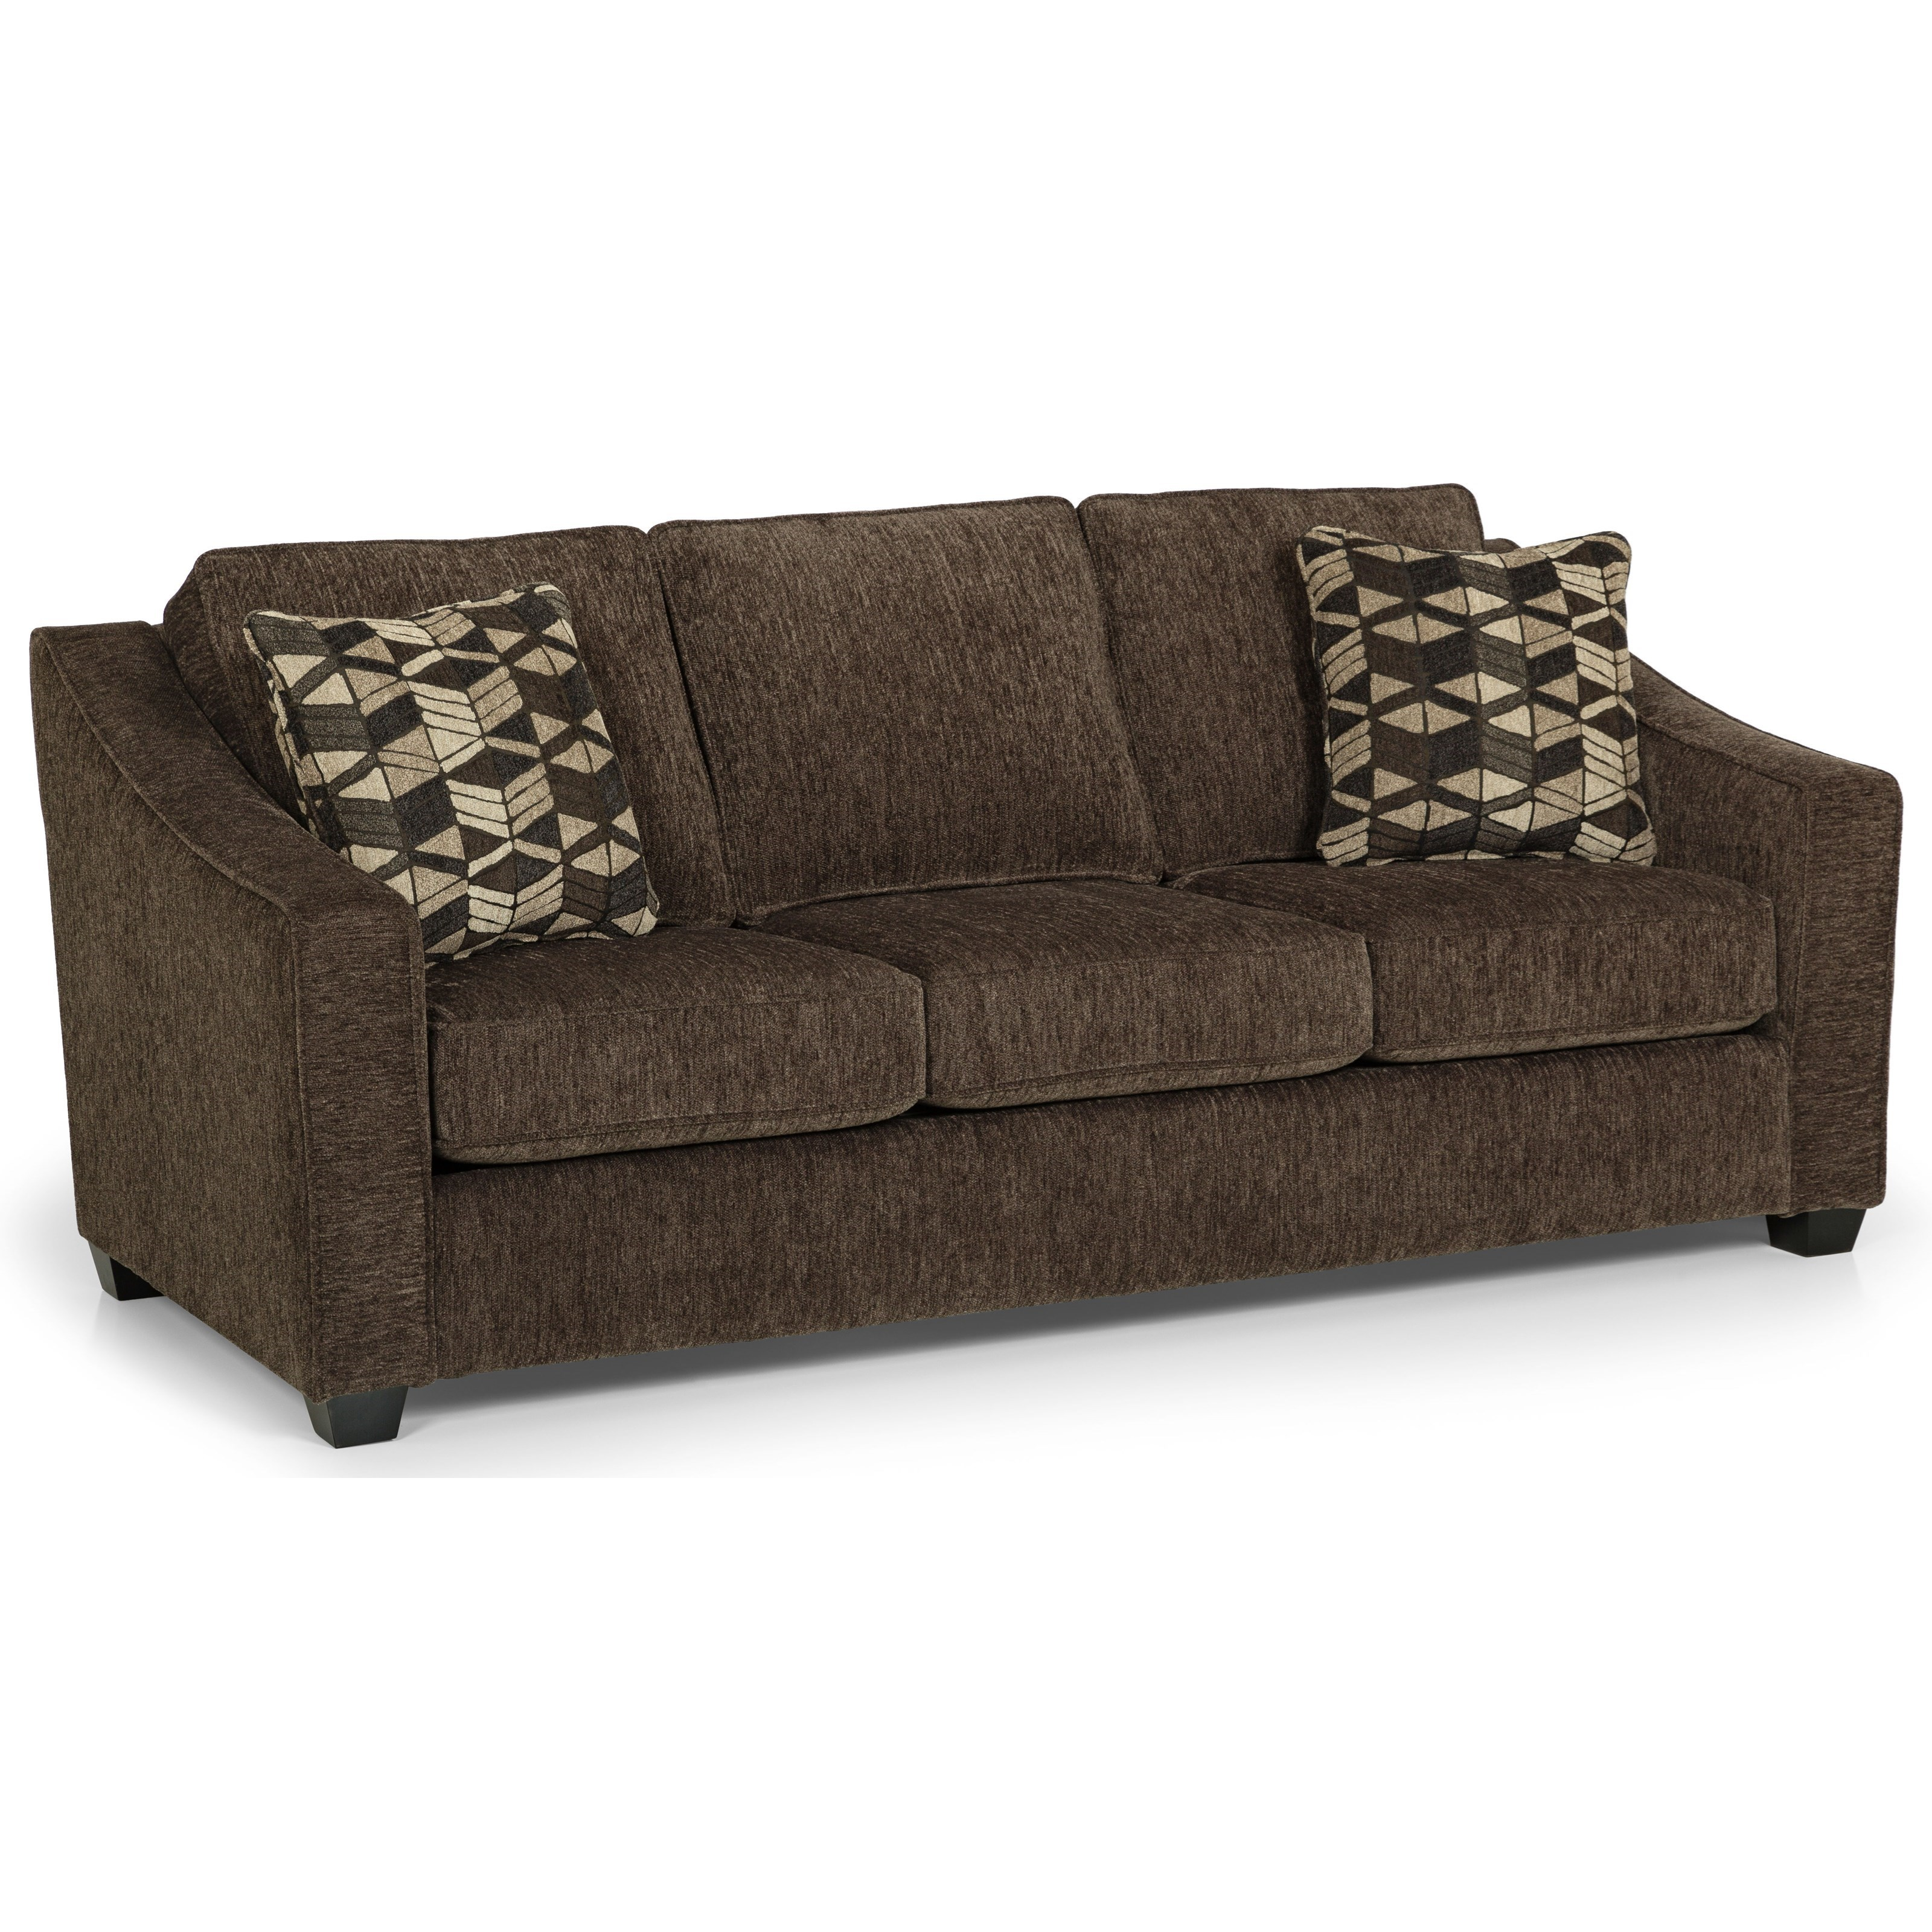 496 Sofa by Stanton at Wilson's Furniture